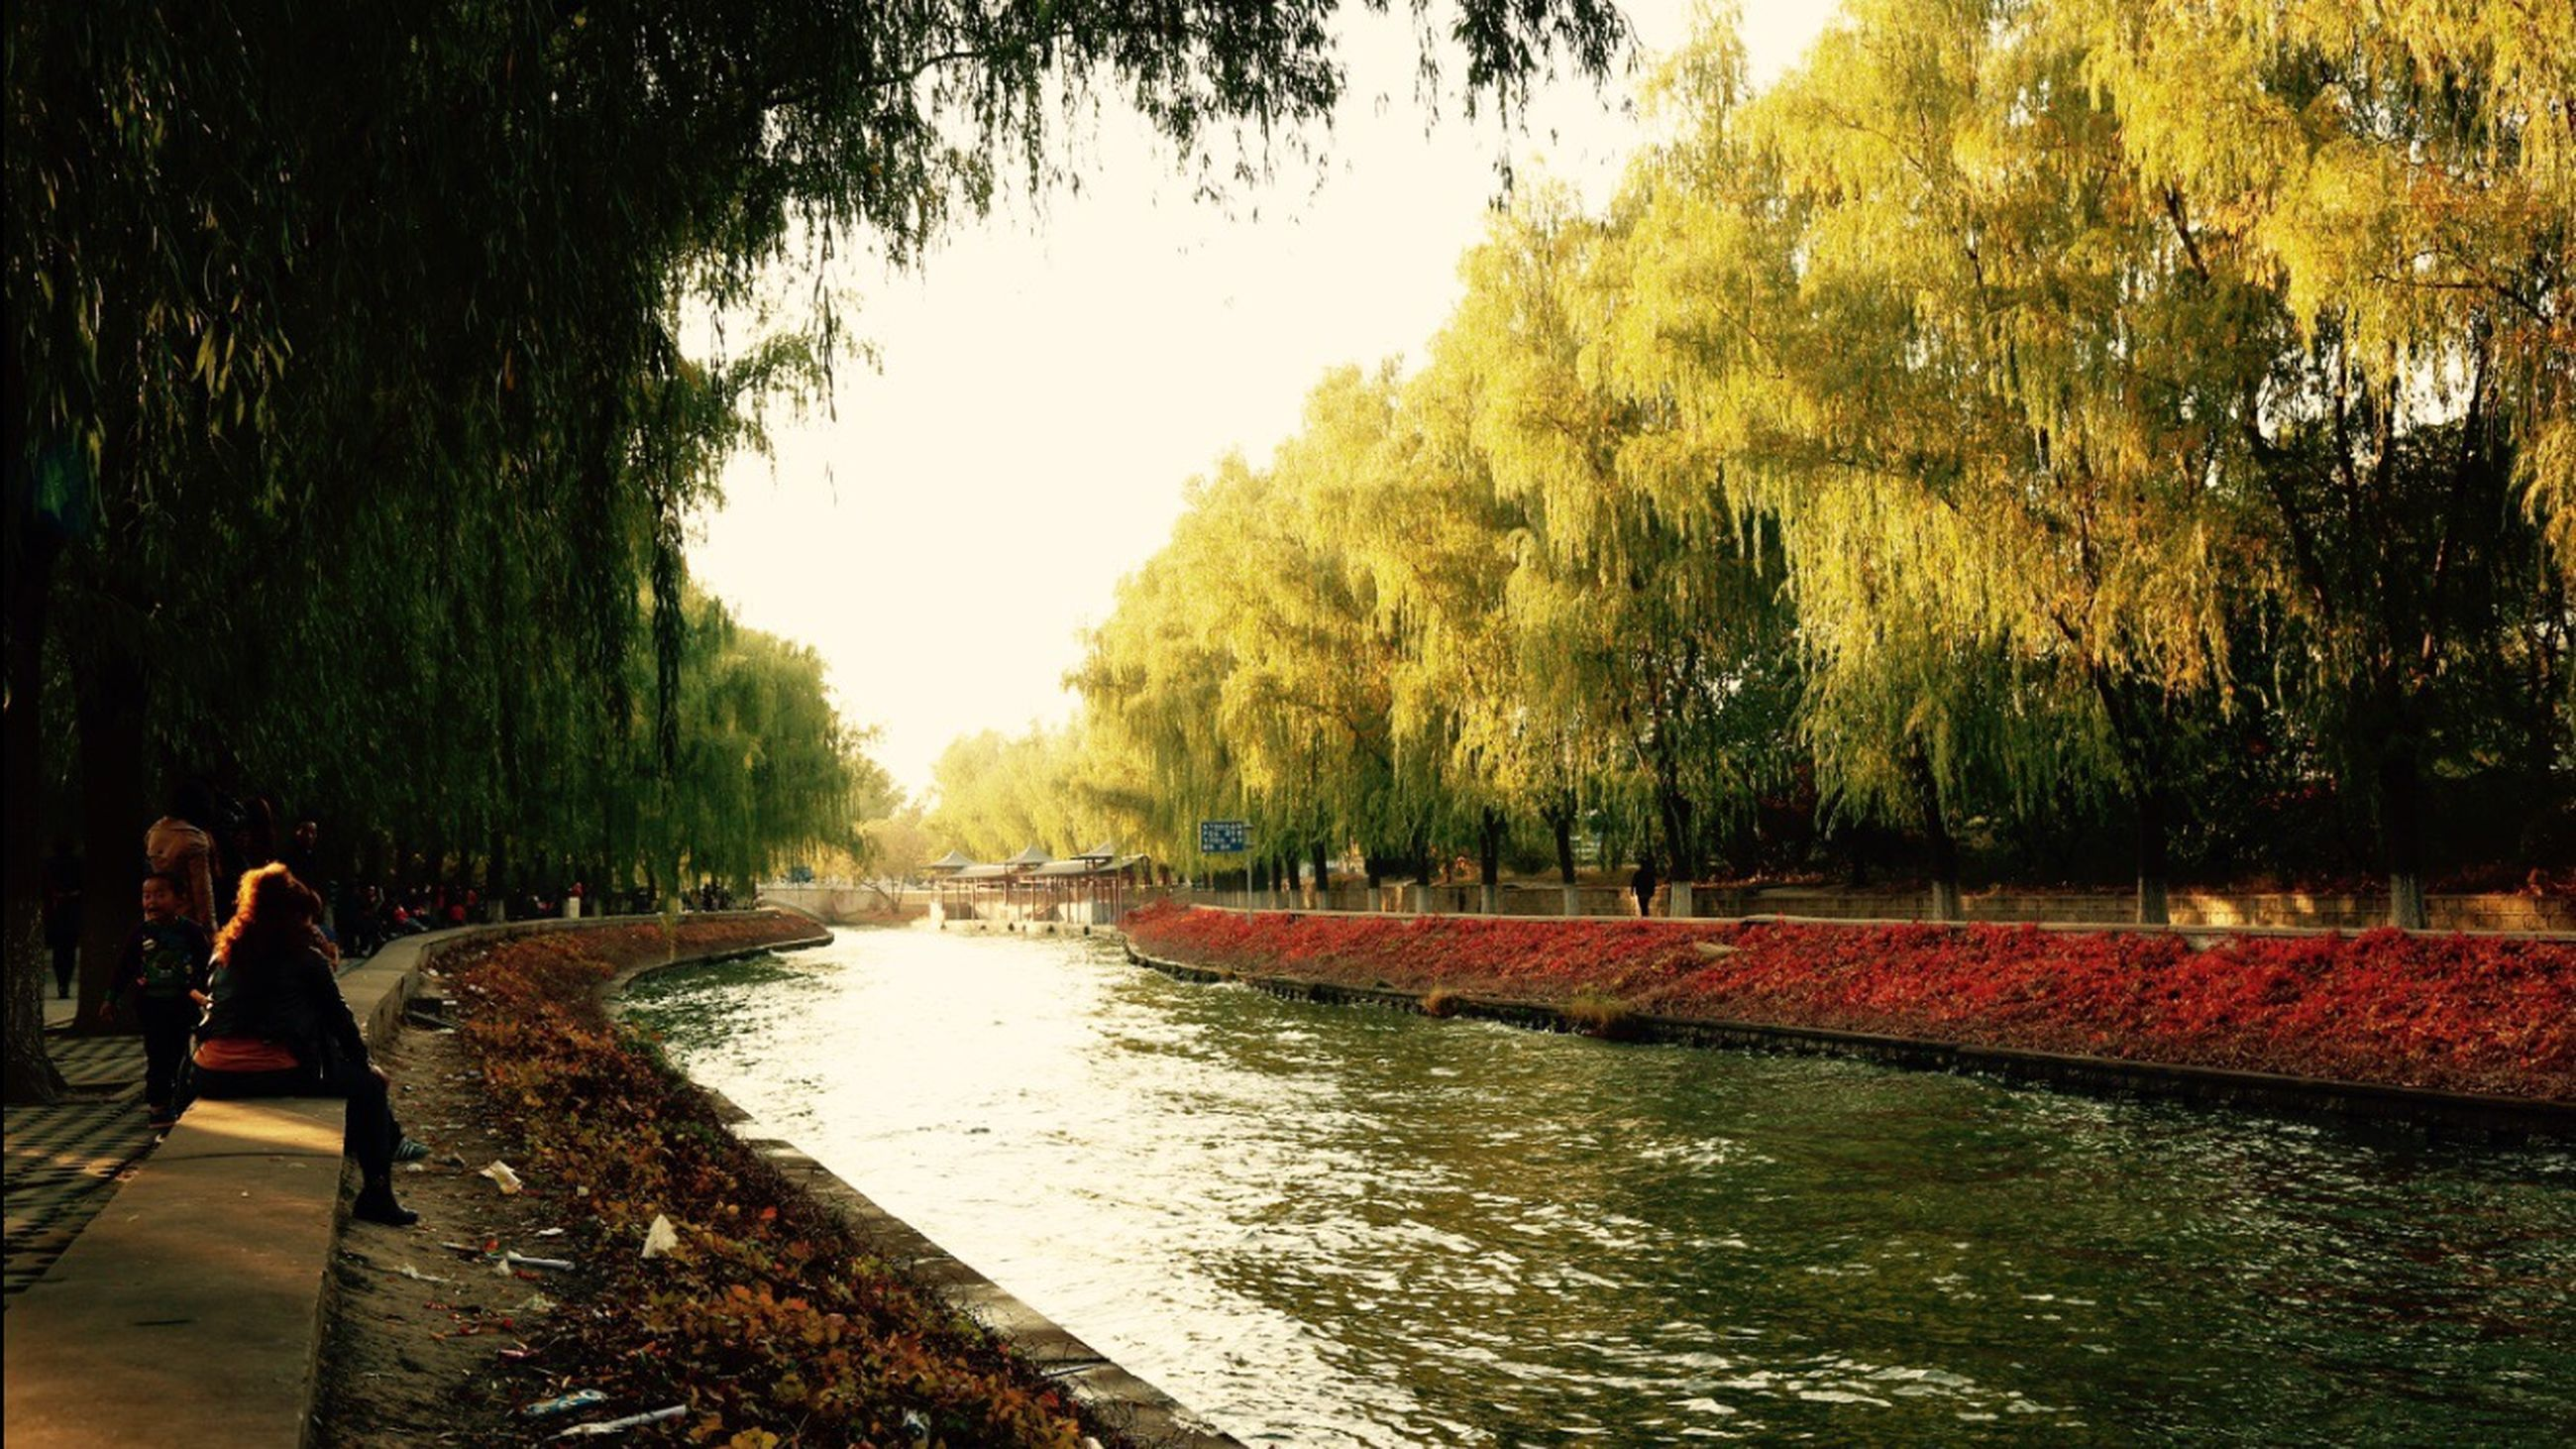 tree, water, tranquility, nature, growth, the way forward, tranquil scene, autumn, footpath, beauty in nature, park - man made space, canal, outdoors, scenics, river, transportation, incidental people, reflection, clear sky, street